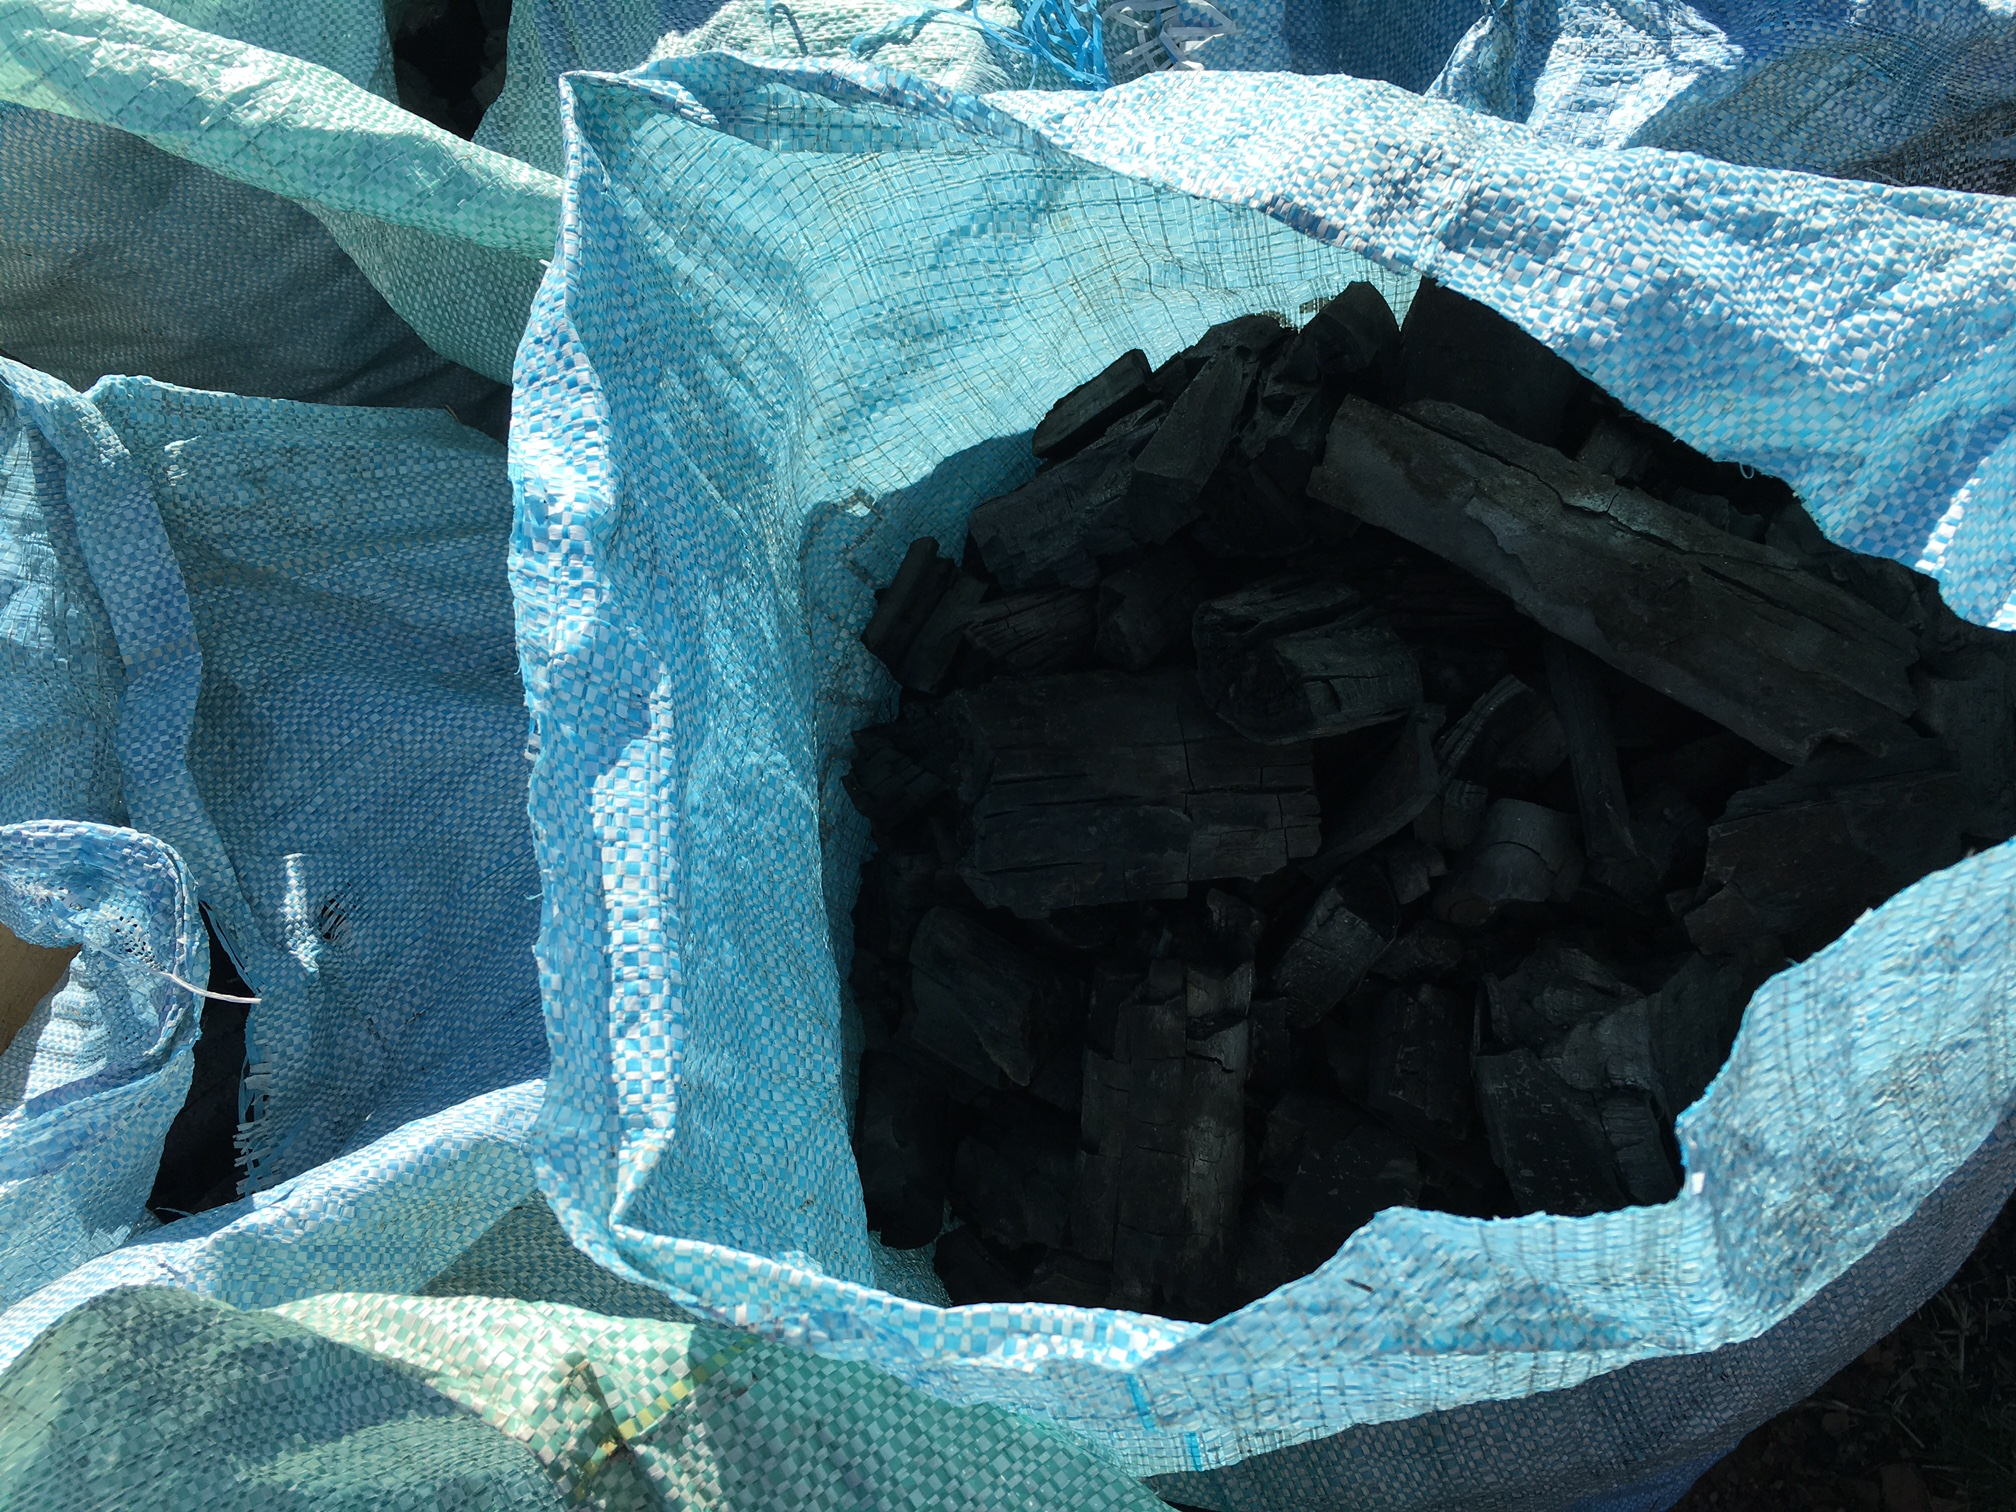 Charcoal made from invasive Black Wattle Trees